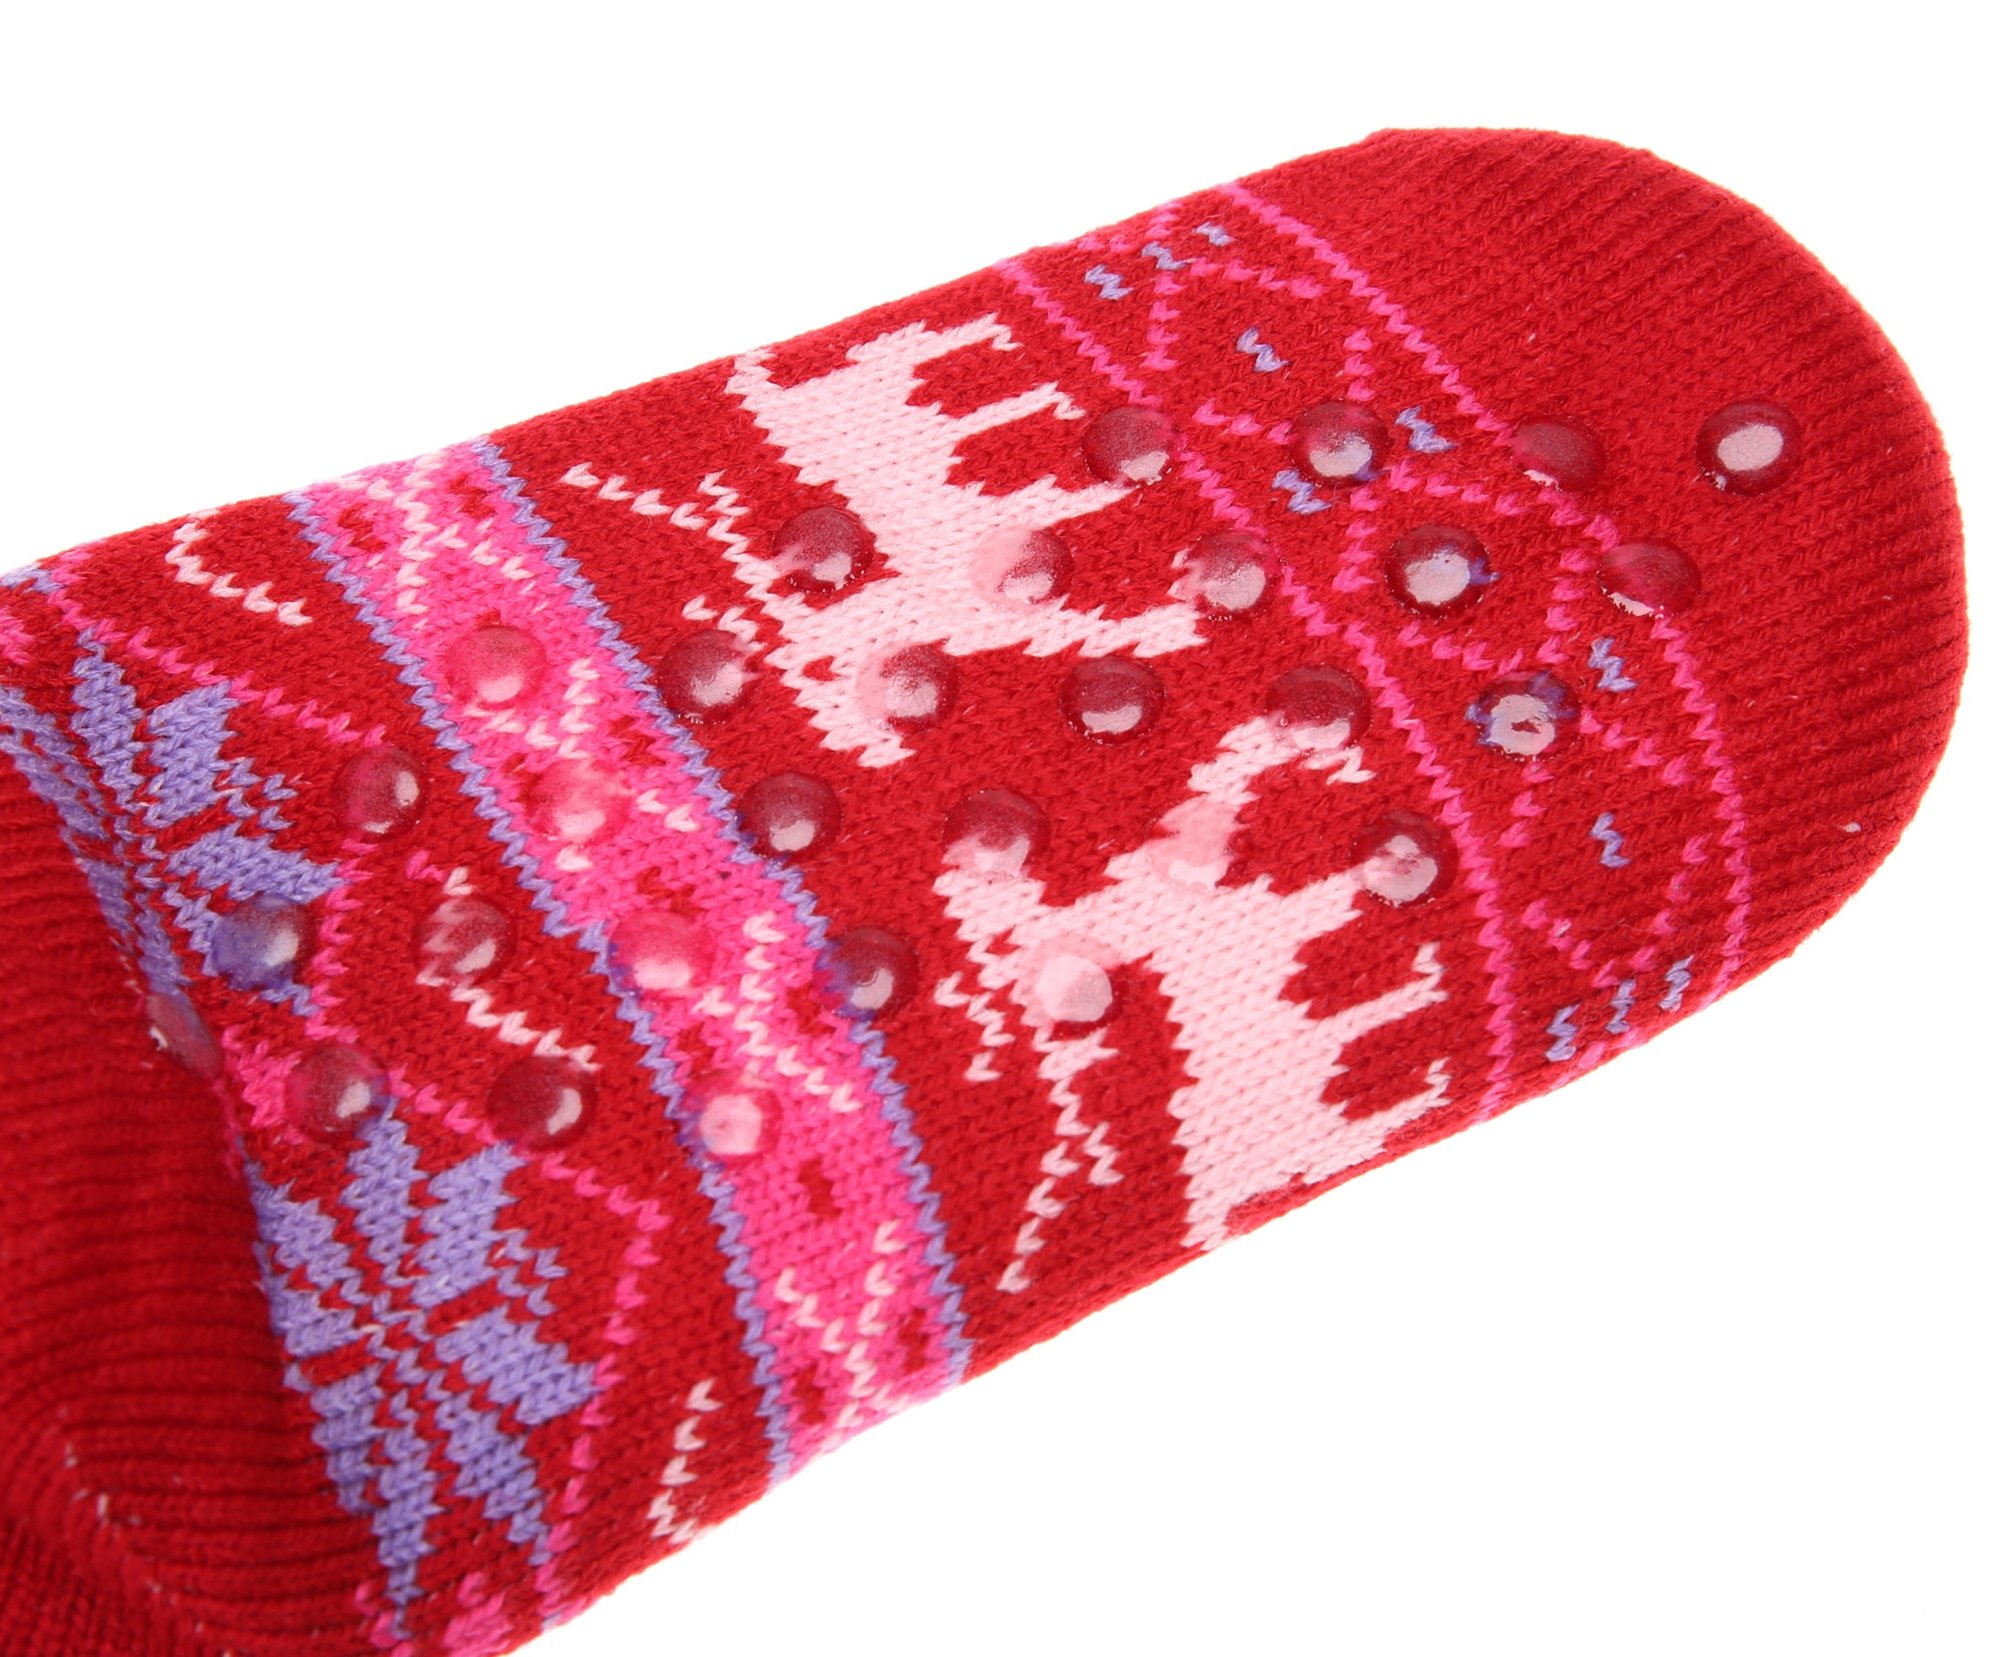 SDBING-Womens-Winter-Super-Soft-Warm-Cozy-Fuzzy-Snowflake-Deer-Fleece-lined-Christmas-Gift-With-Grippers-Slipper-Socks